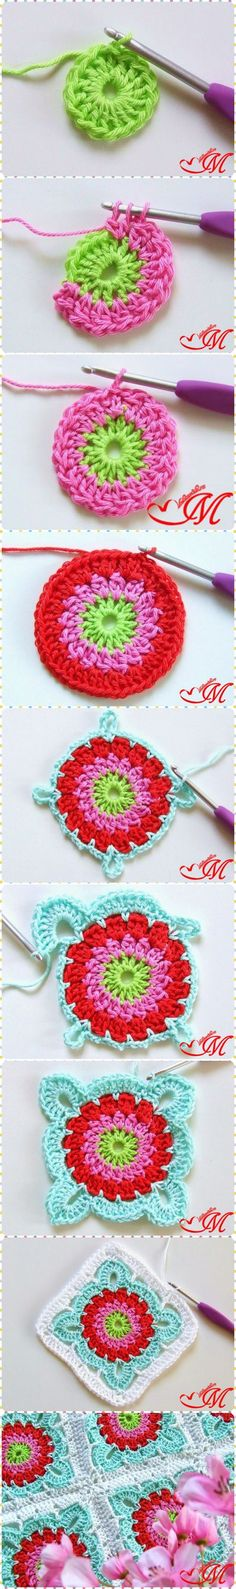 How to Crochet Pretty Granny Square Blanket with Free Pattern